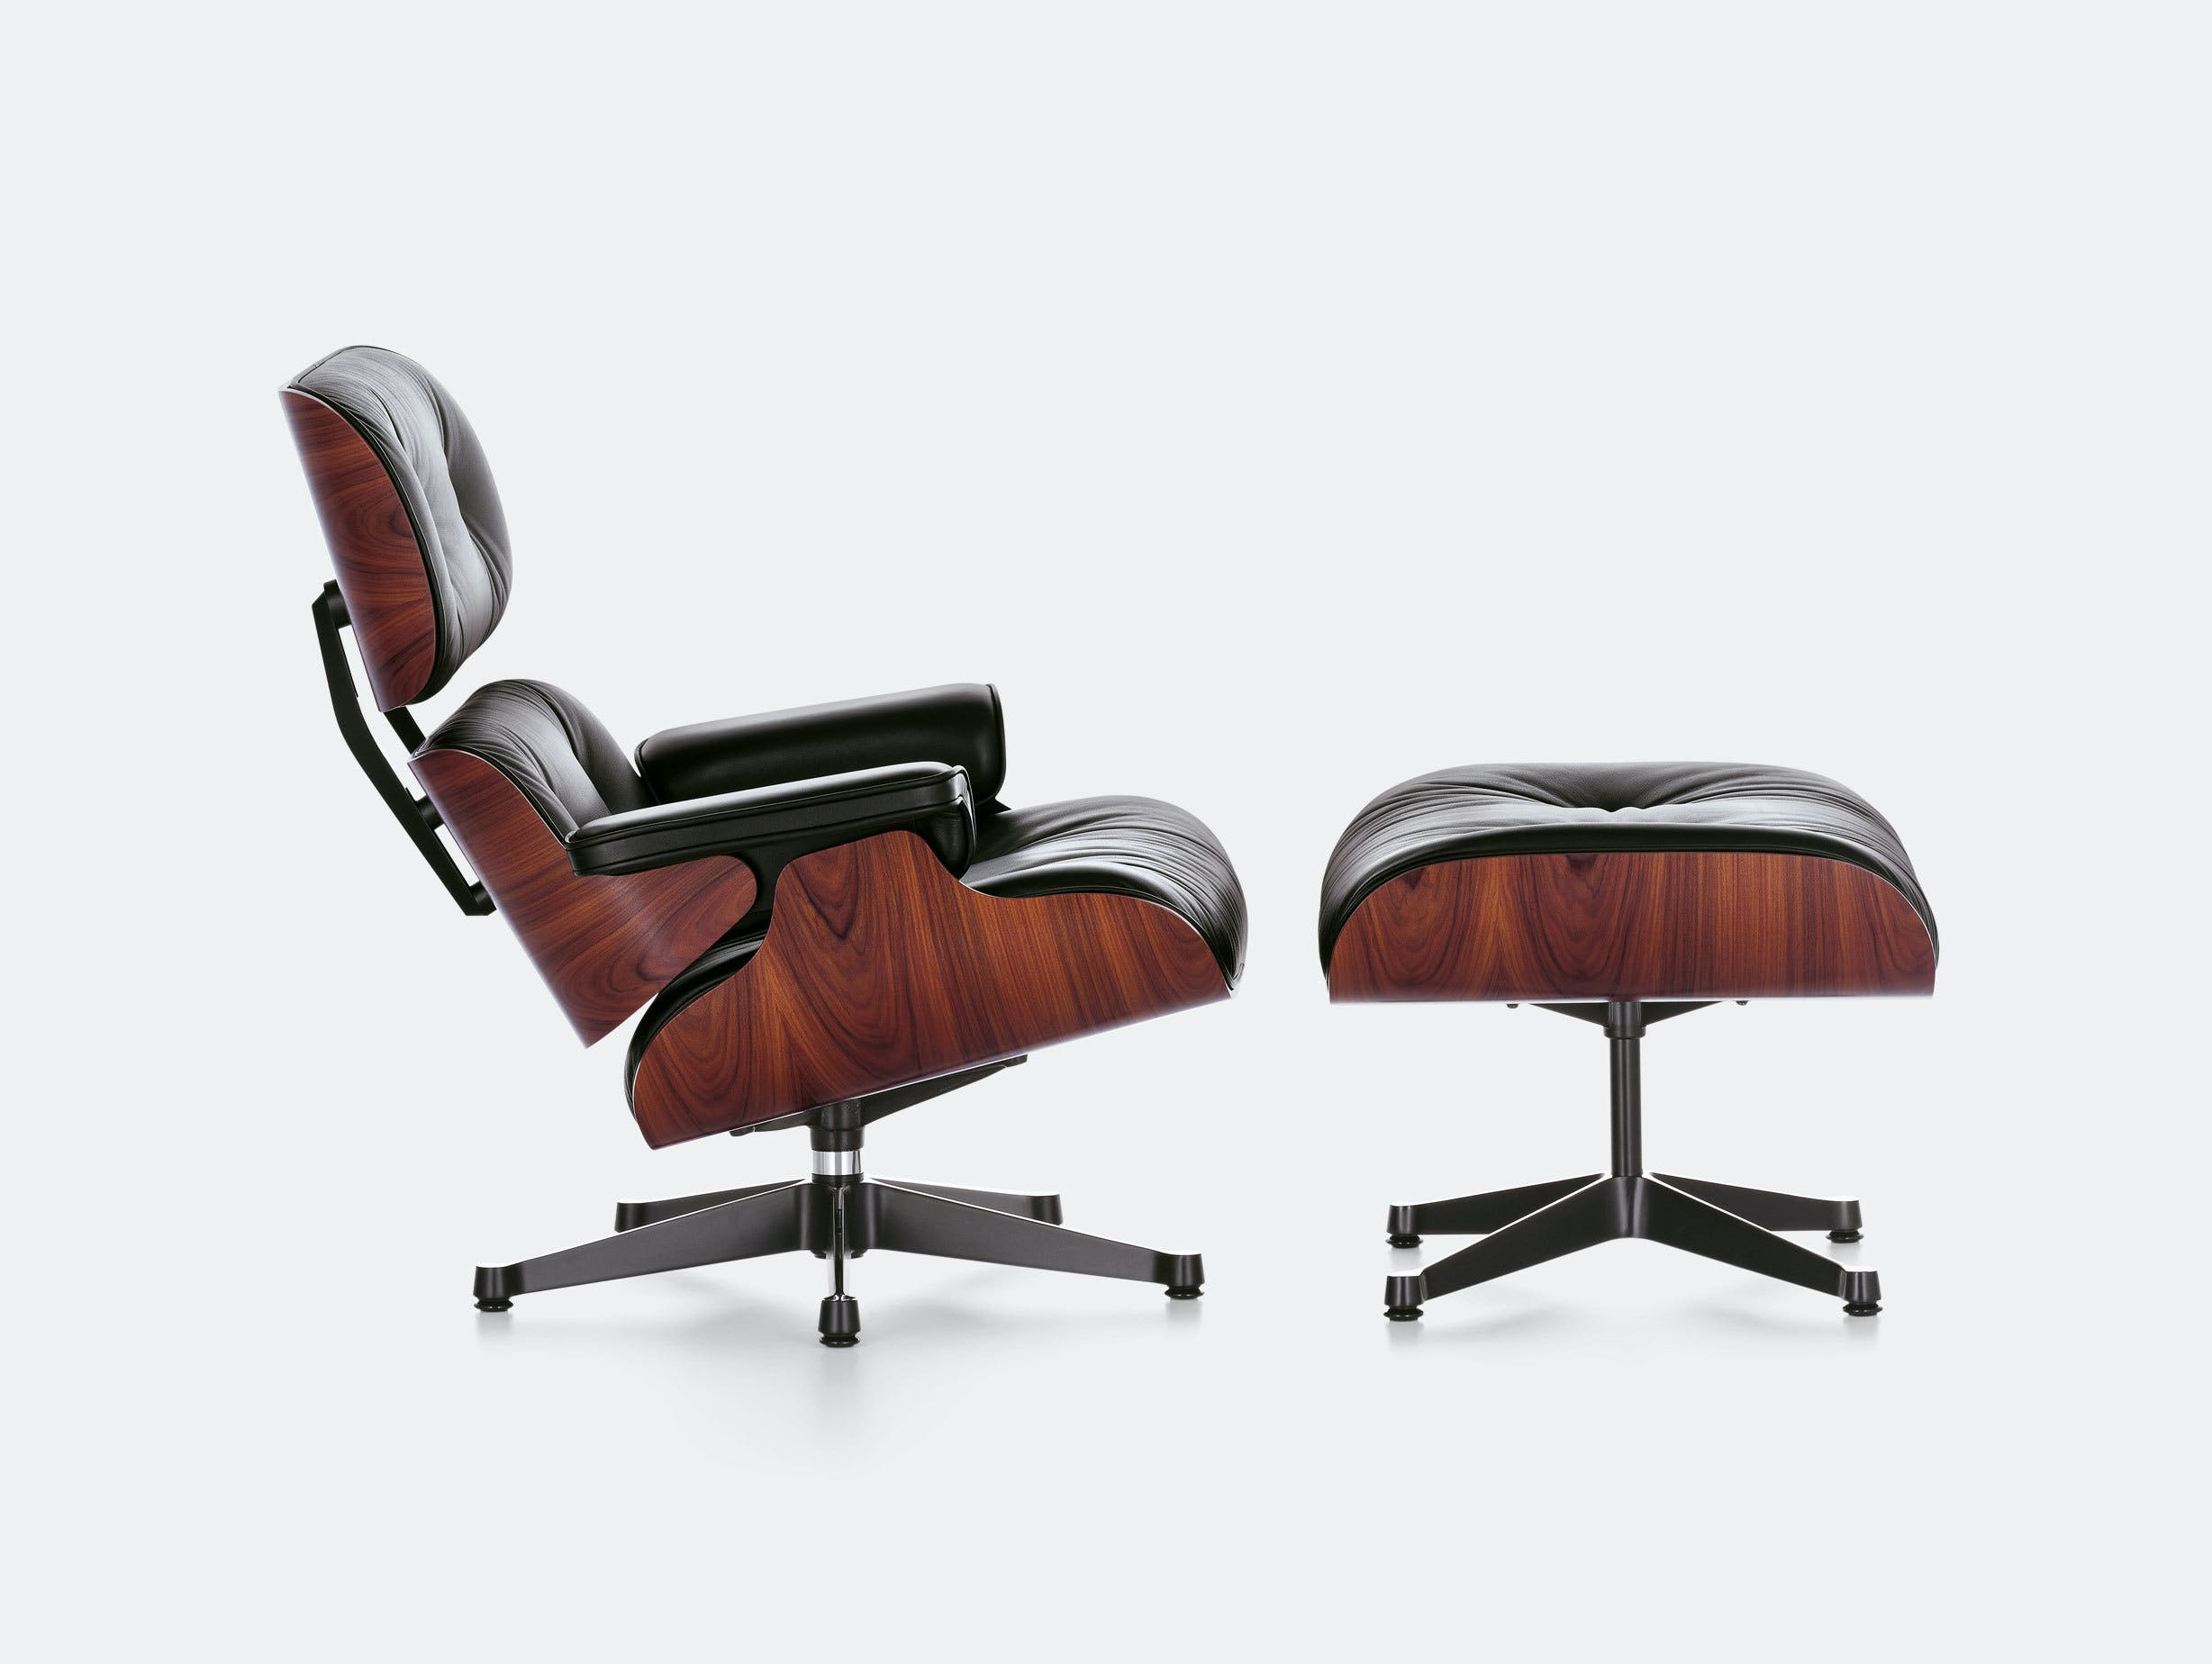 Vitra Eames Lounge Chair Ottoman Santos Palisander Charles And Ray Eames